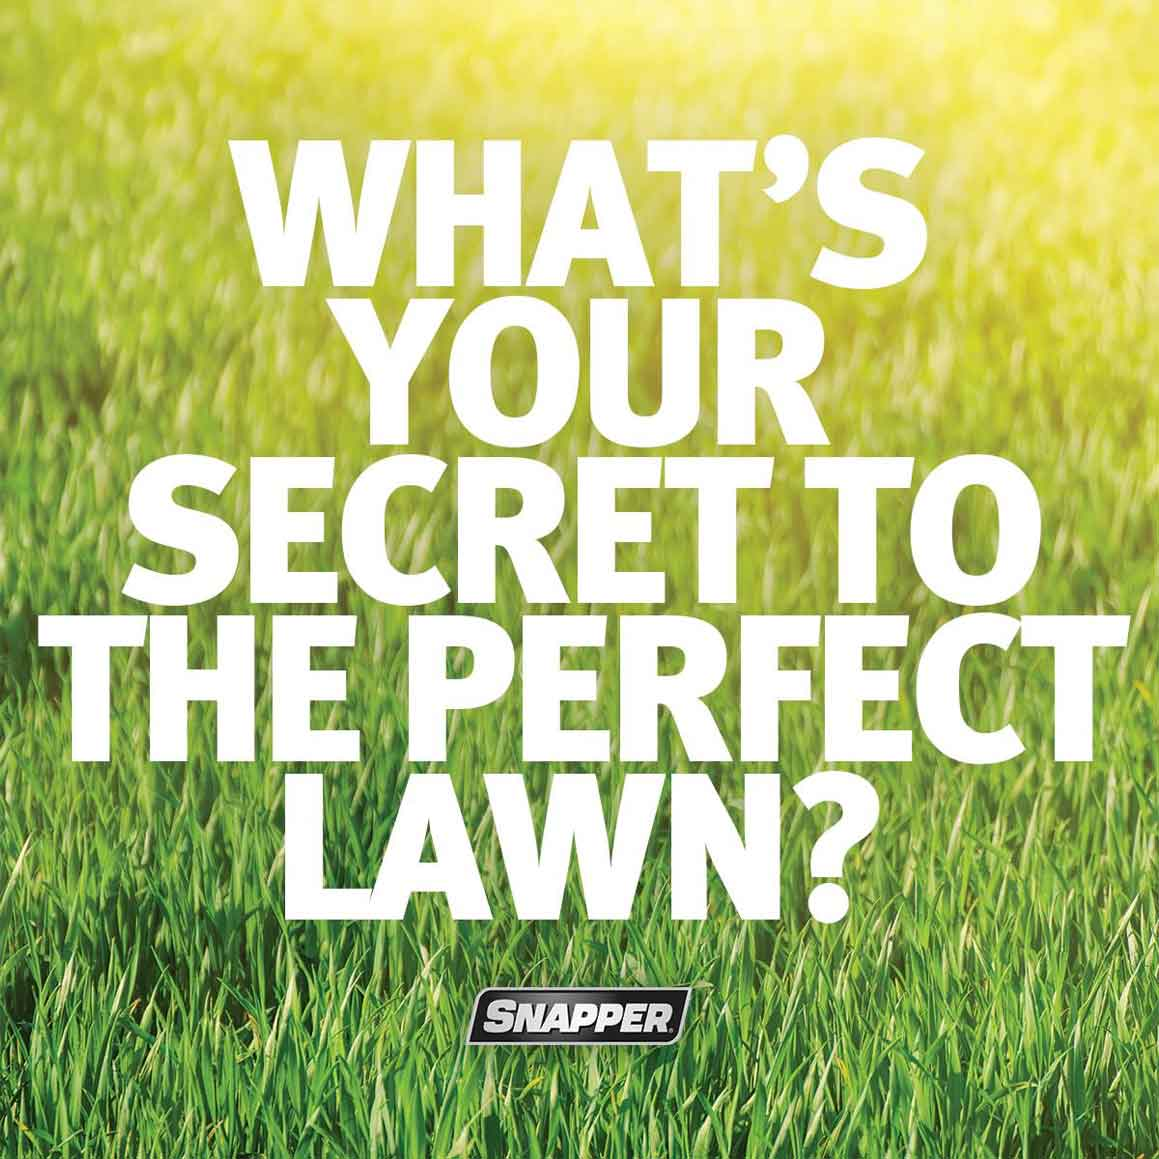 Large white text overlaid on a picture of green grass reads What's Your Secret to a Perfect Lawn?